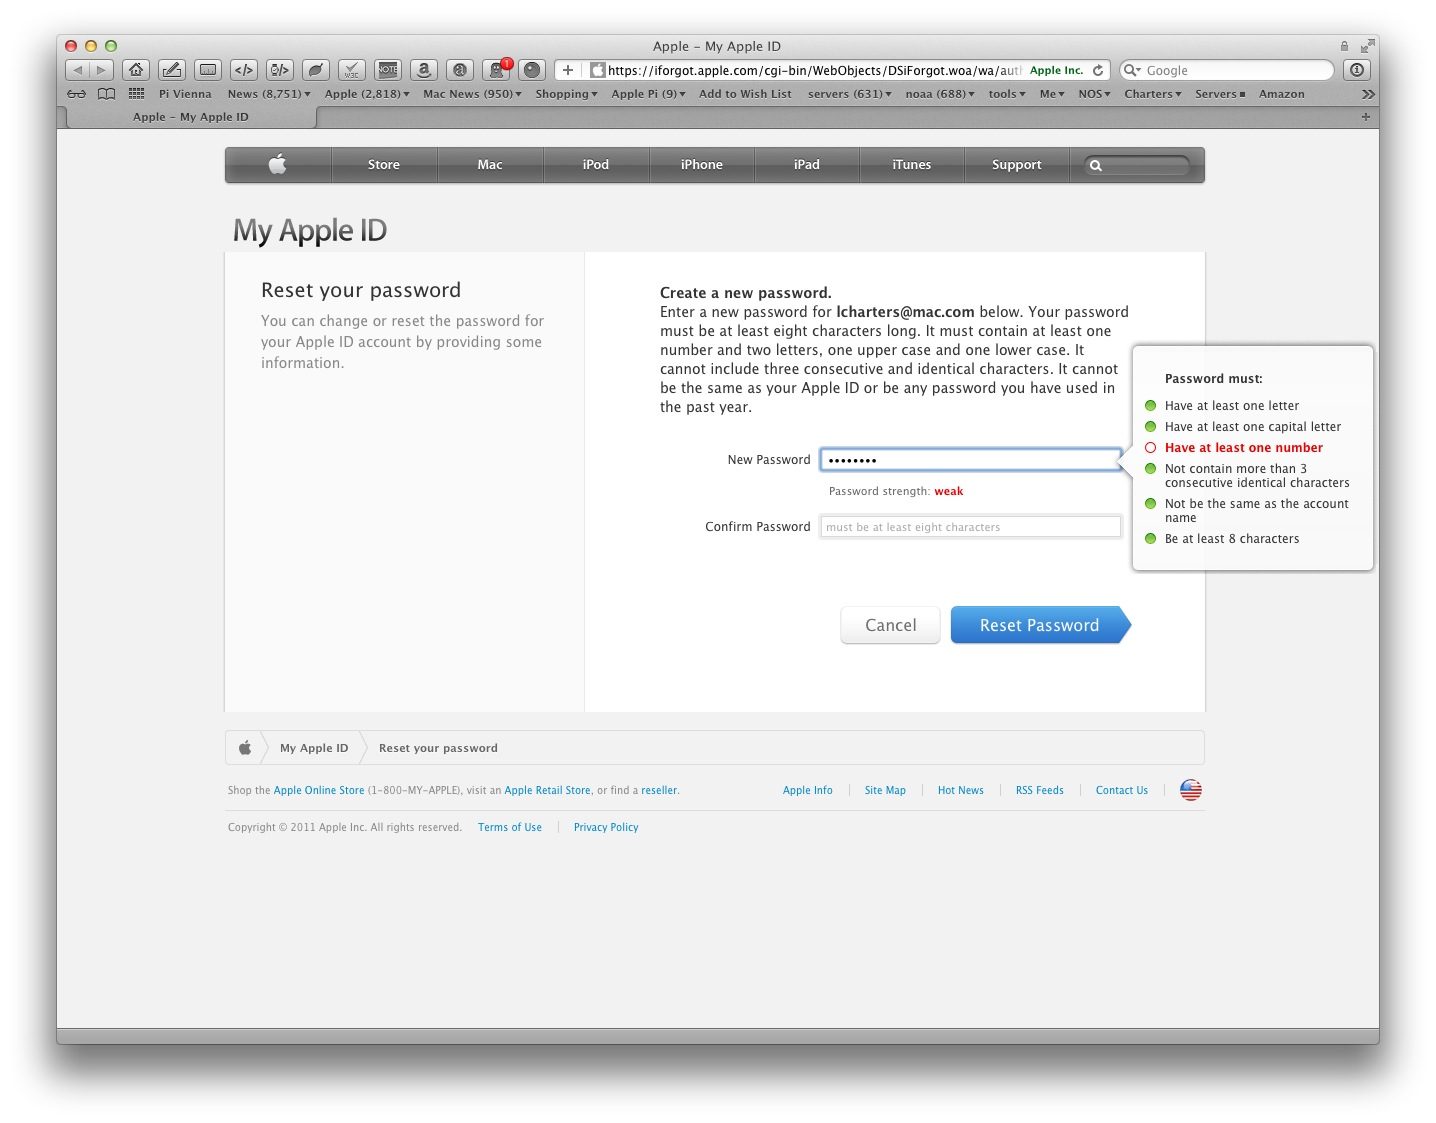 Apple critiques your Apple ID